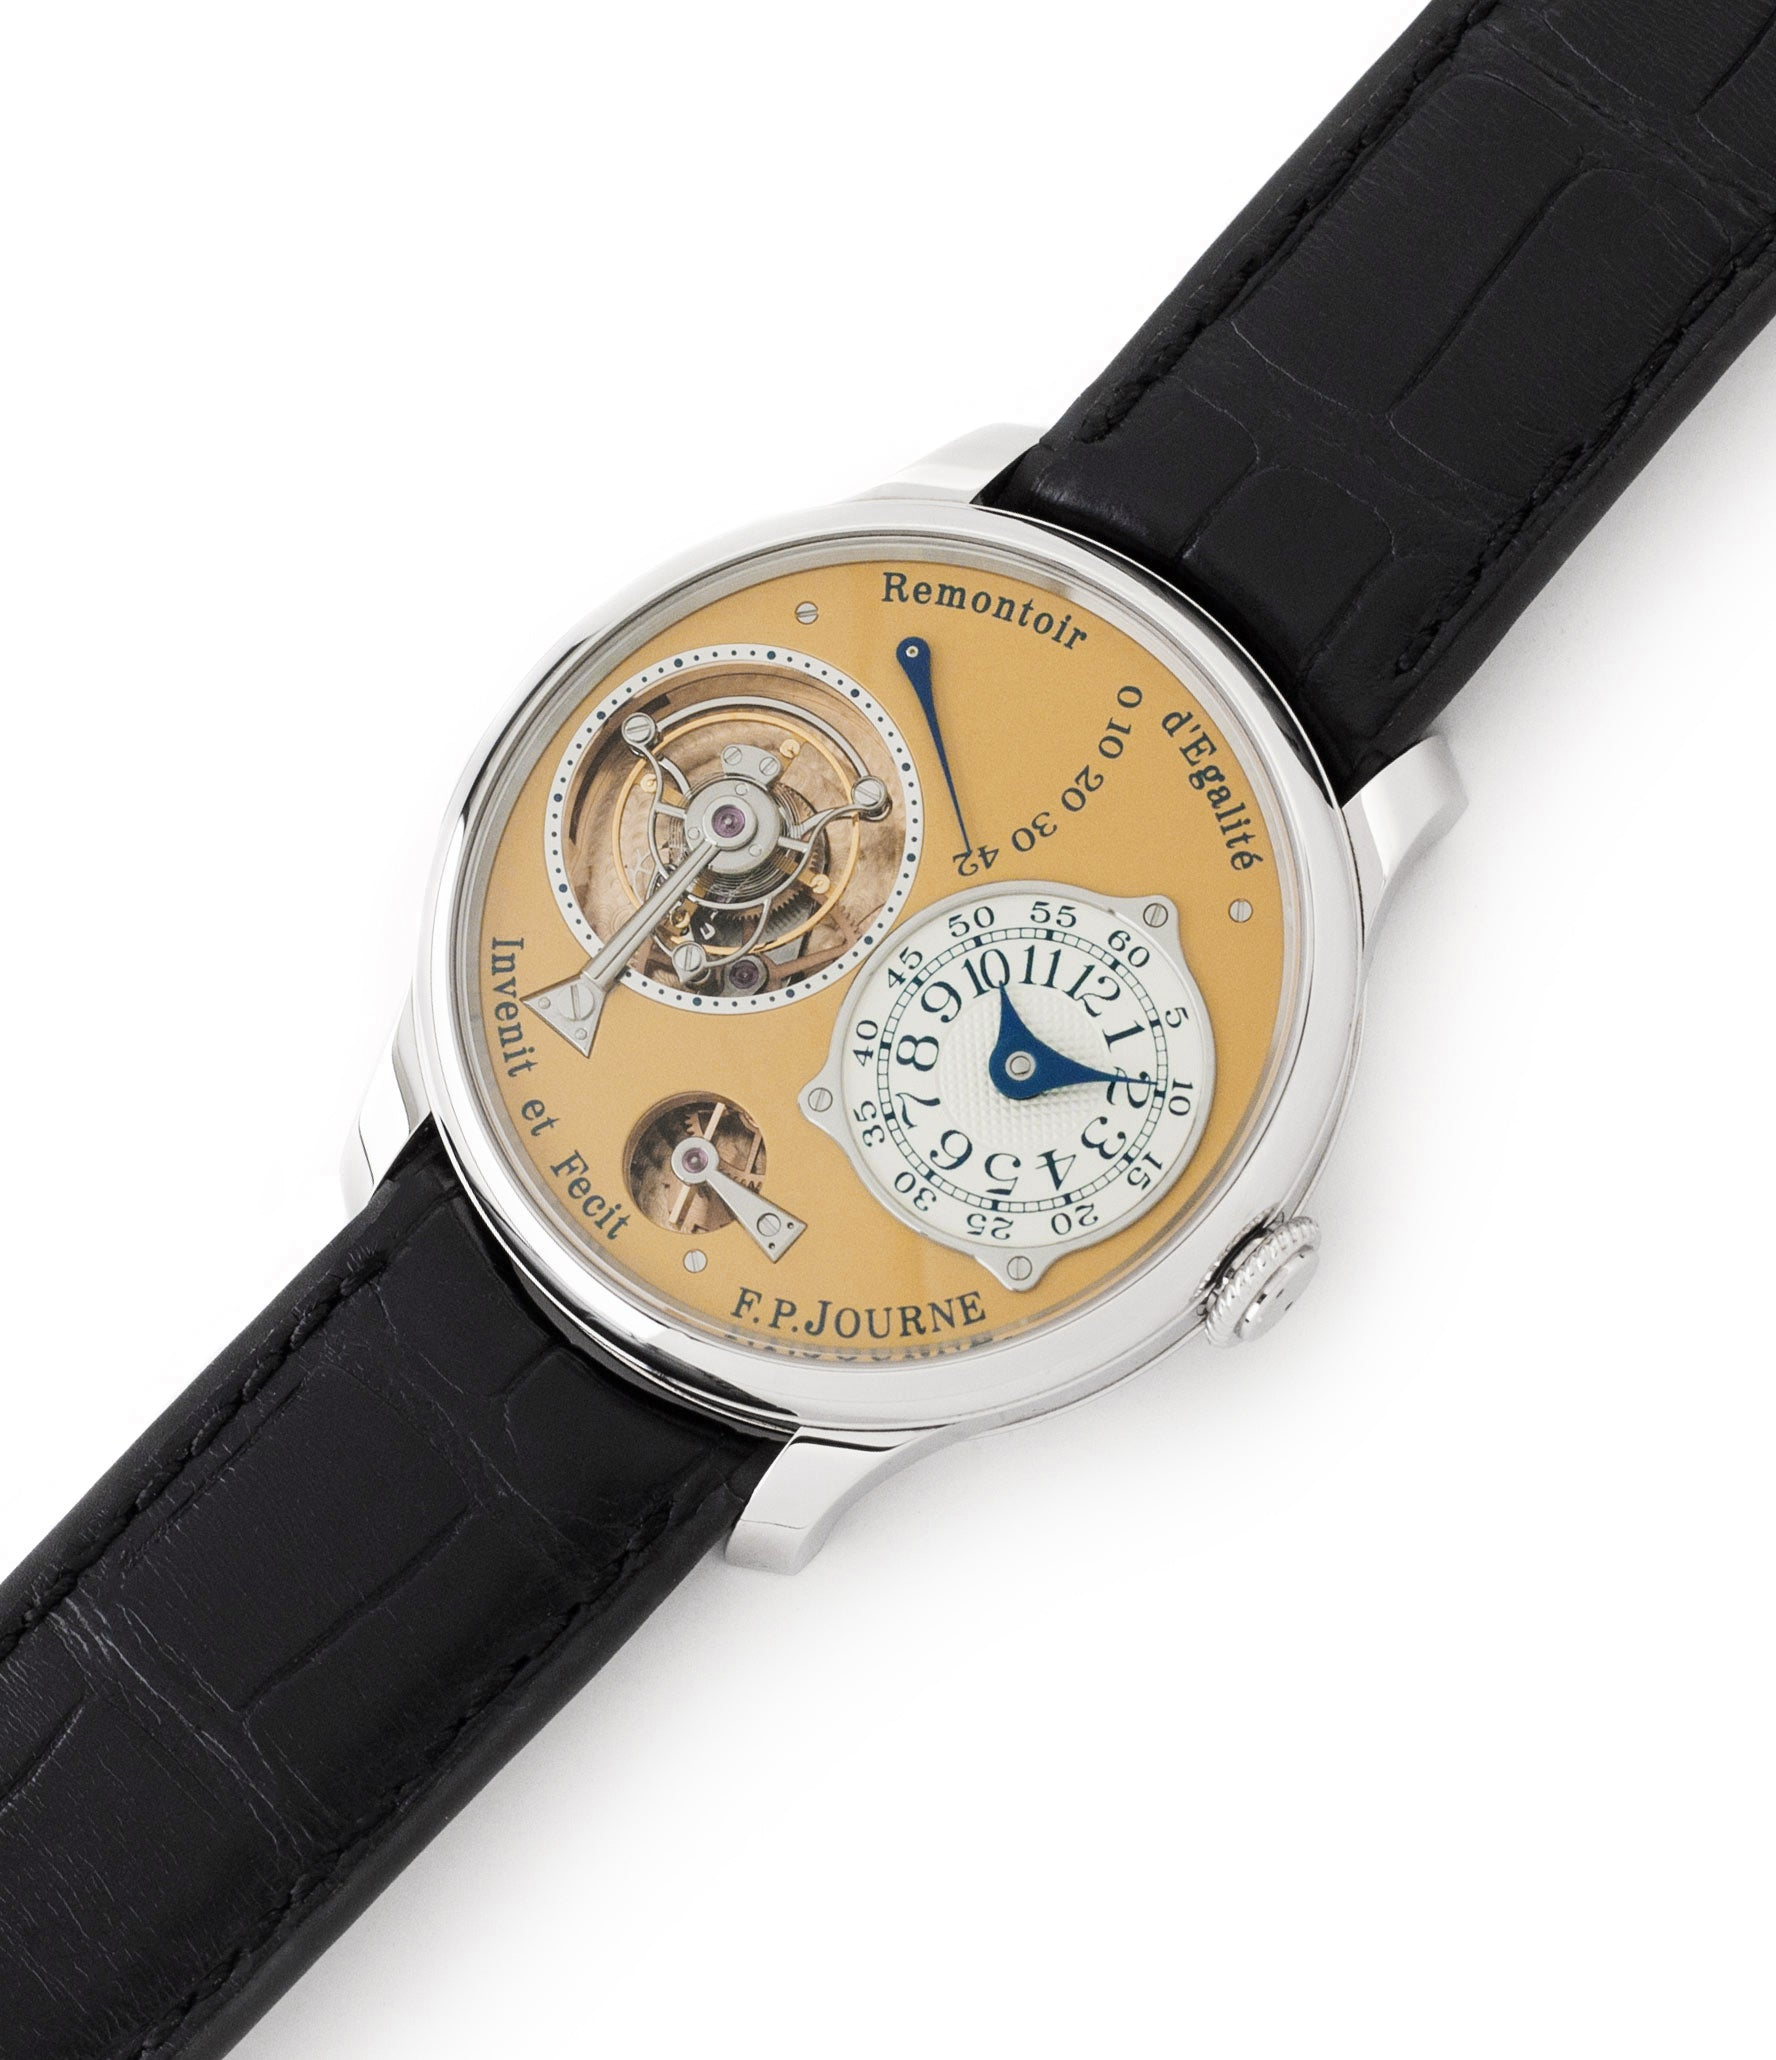 38 mm steel F. P. Journe Tourbillon Souverain steel dress watch for sale online at A Collected Man London UK approved seller of independent watchmakers